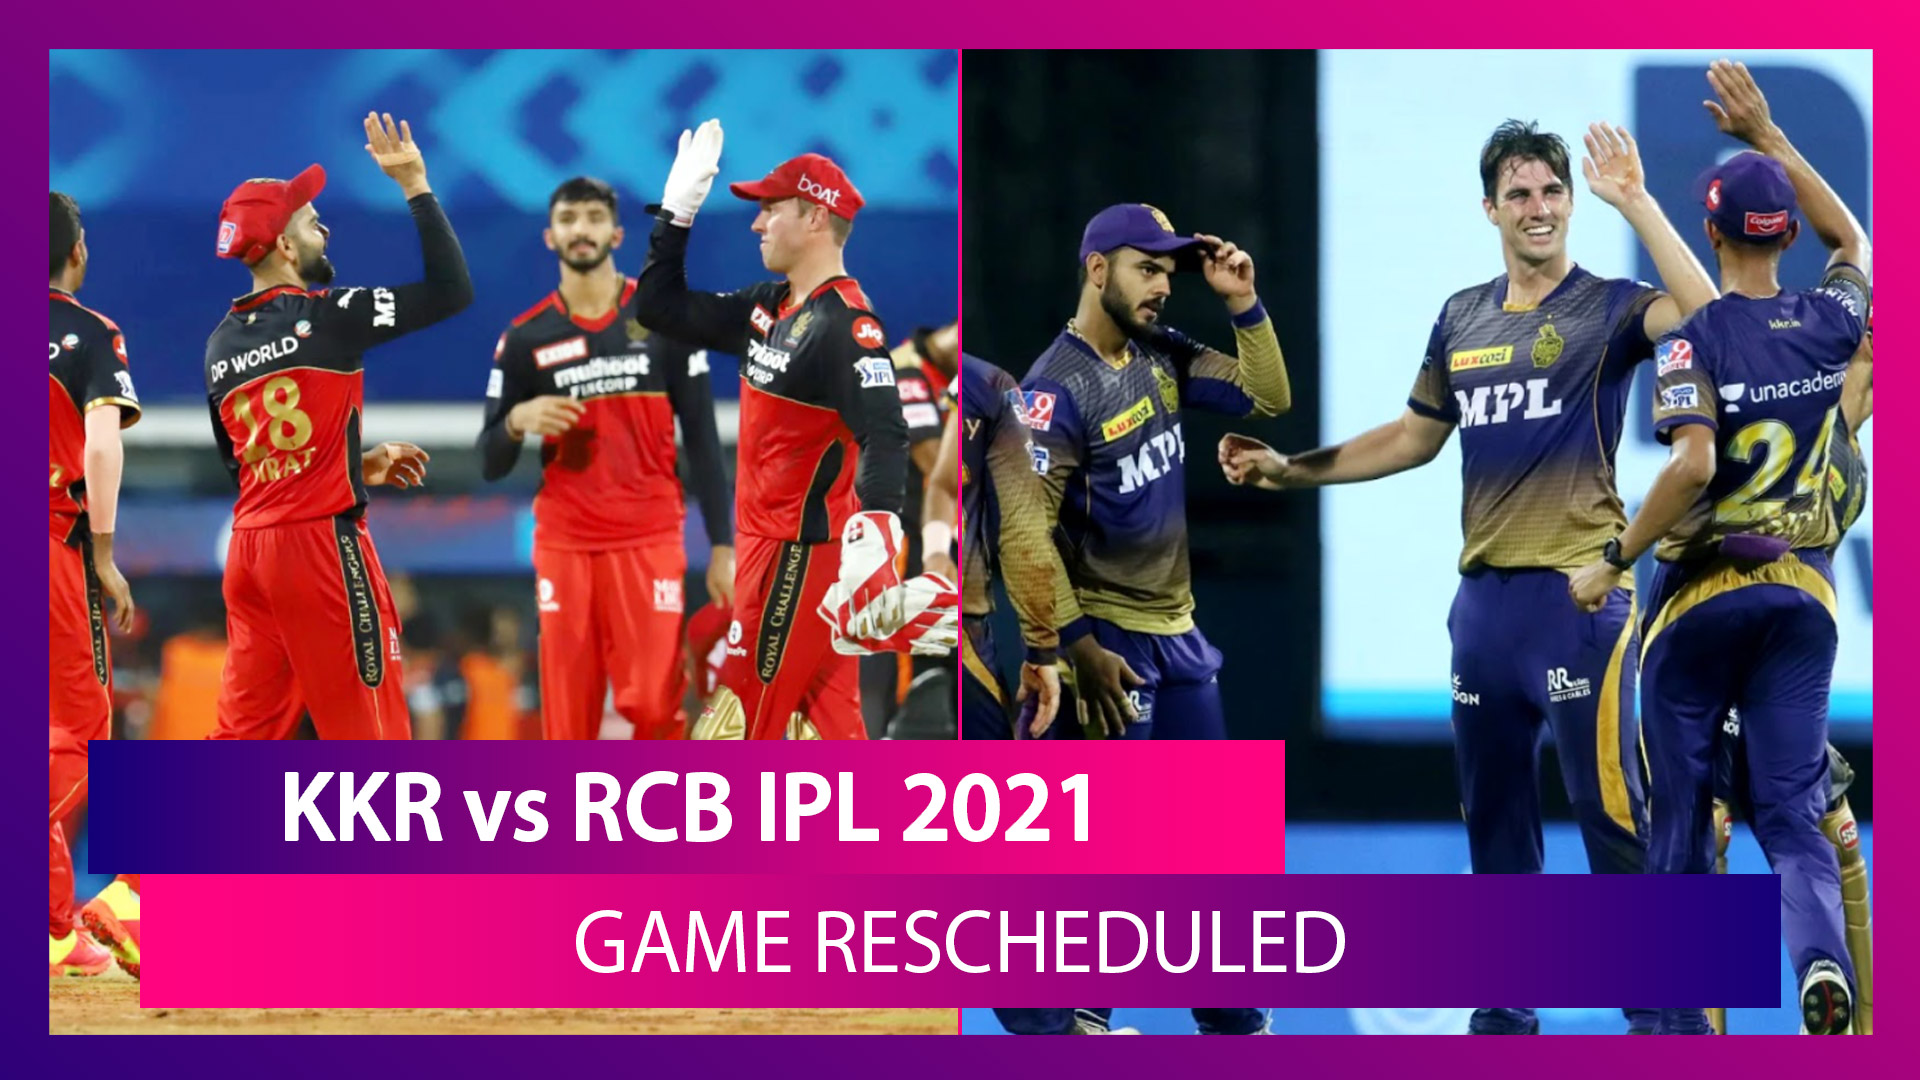 KKR vs RCB IPL 2021 Game Postponed After Varun Chakravarthy, Sandeep Warrier Test COVID-19 Positive